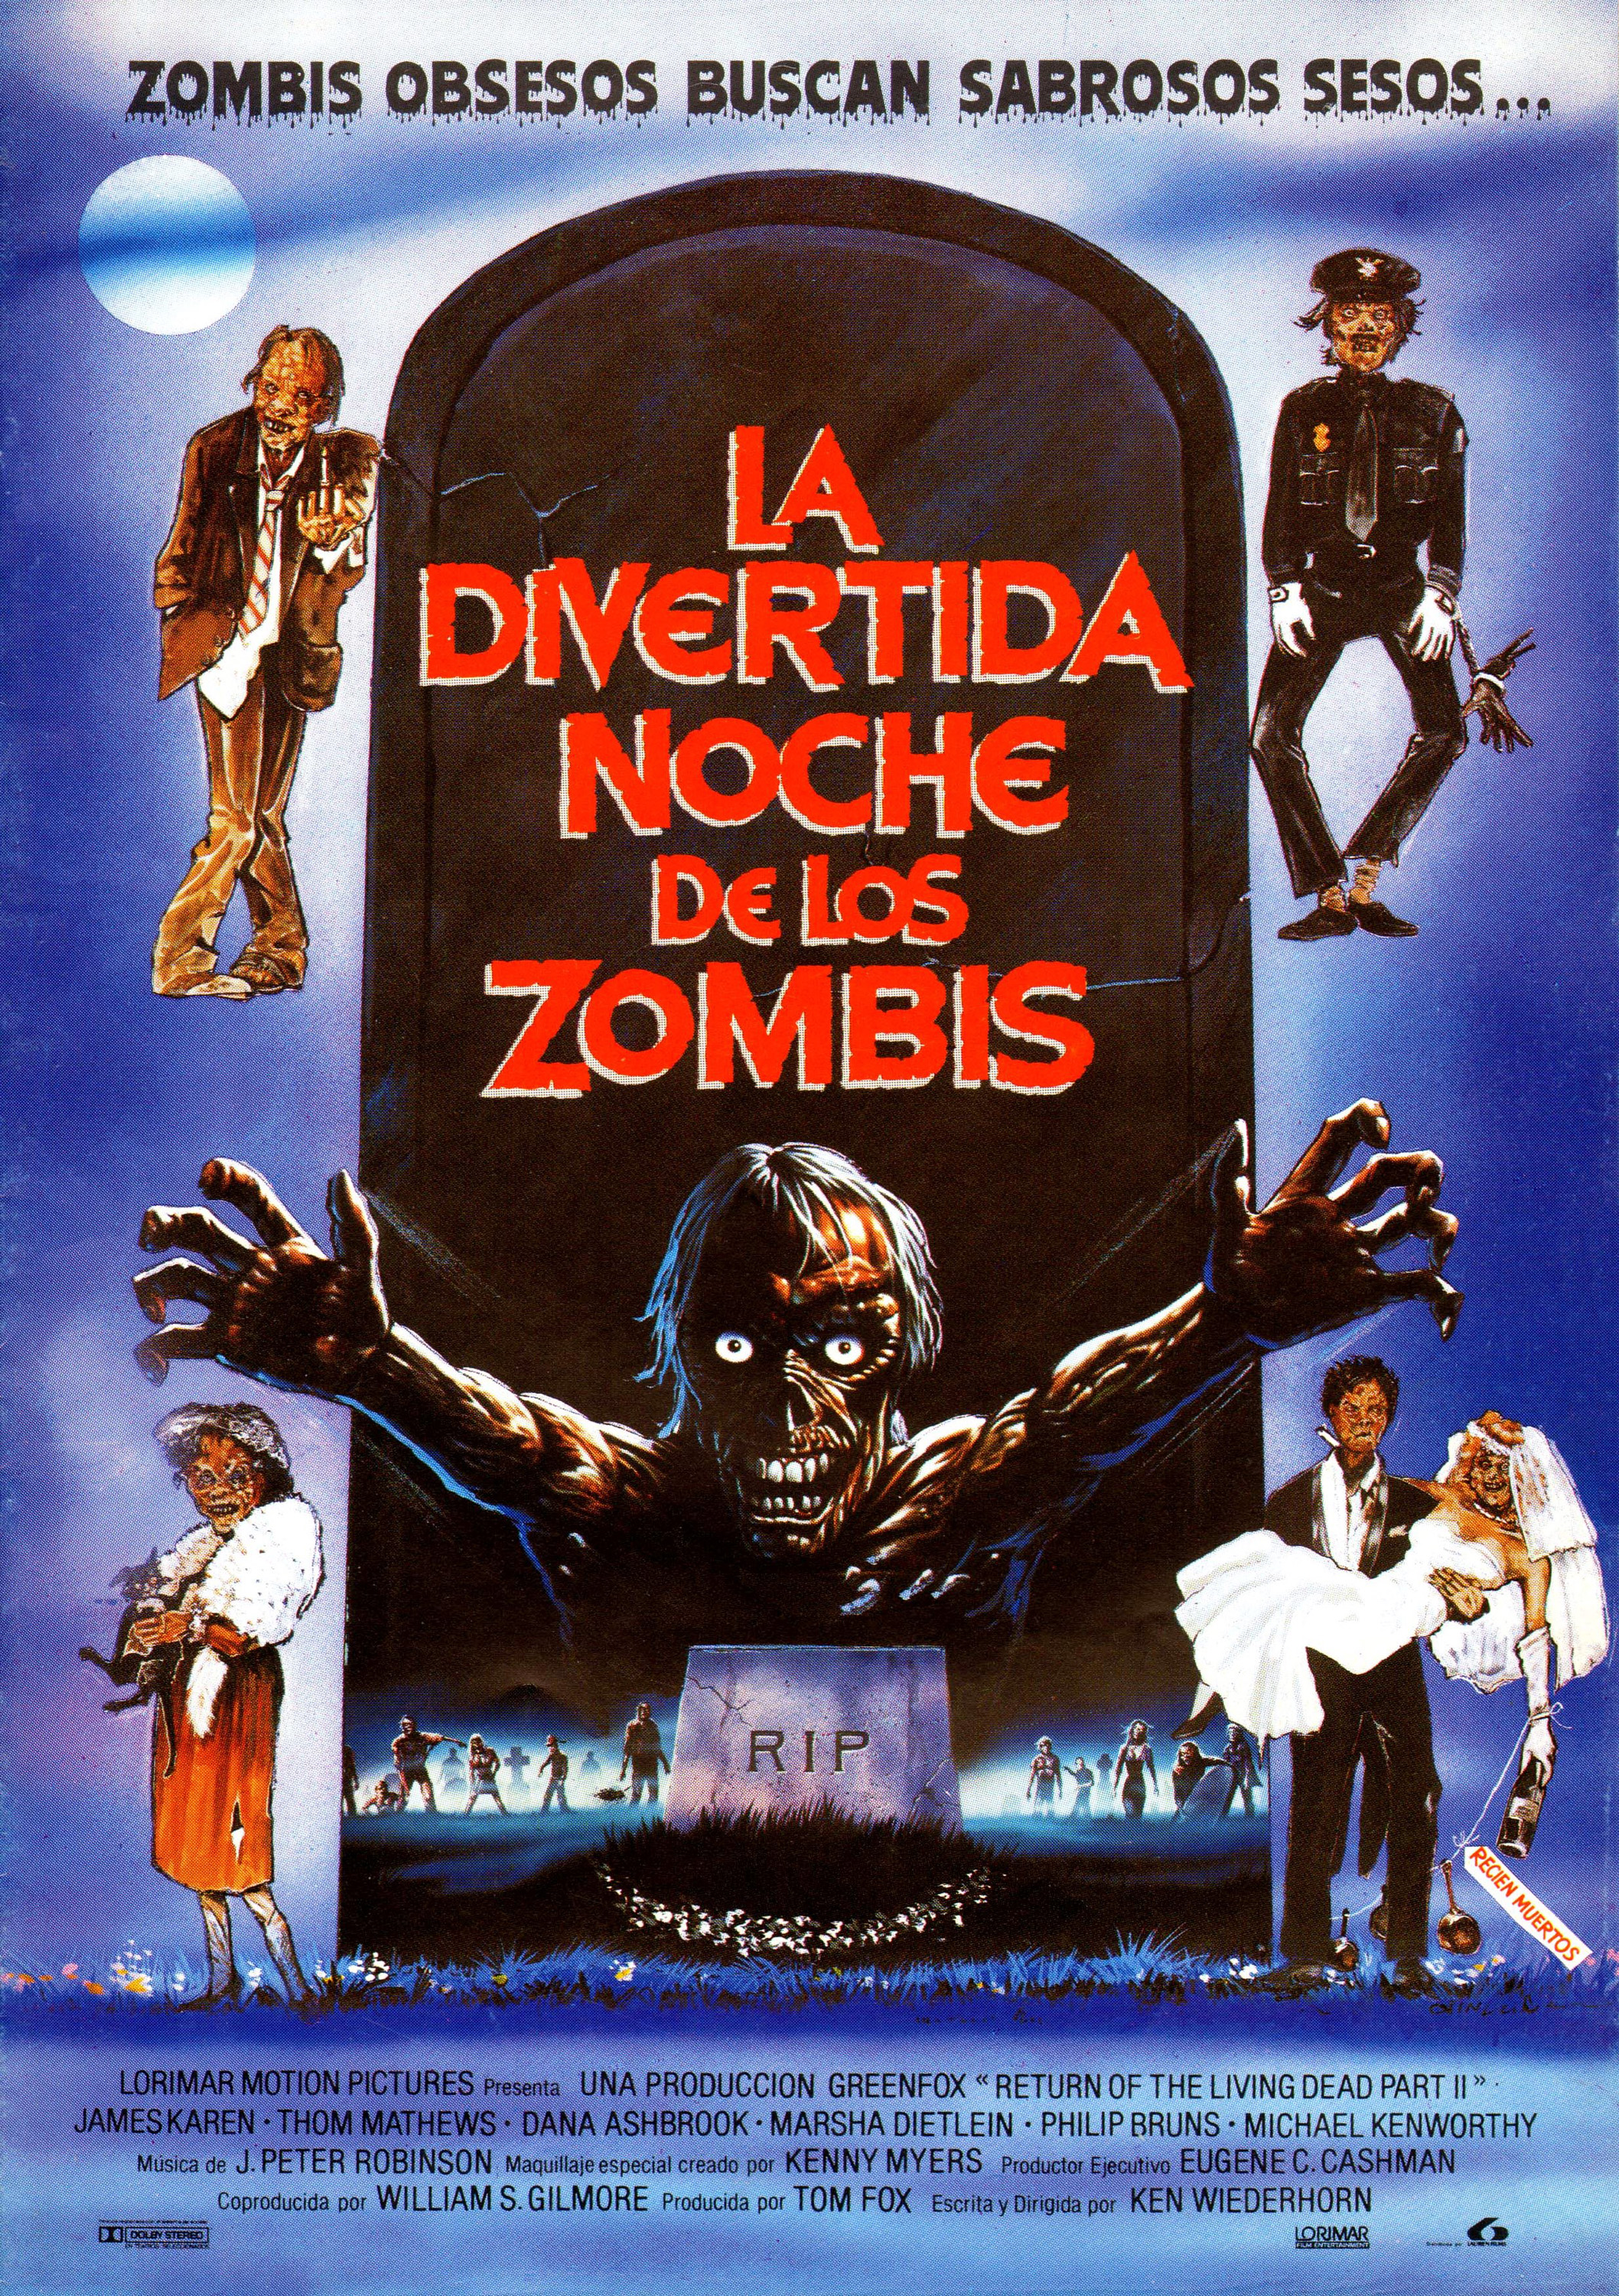 M%C3%A1s-de-posters-y-fan-art-de-la-saga-Return-of-the-living-dead-horror-zombies-horrorposters-wallpaper-wp50010189